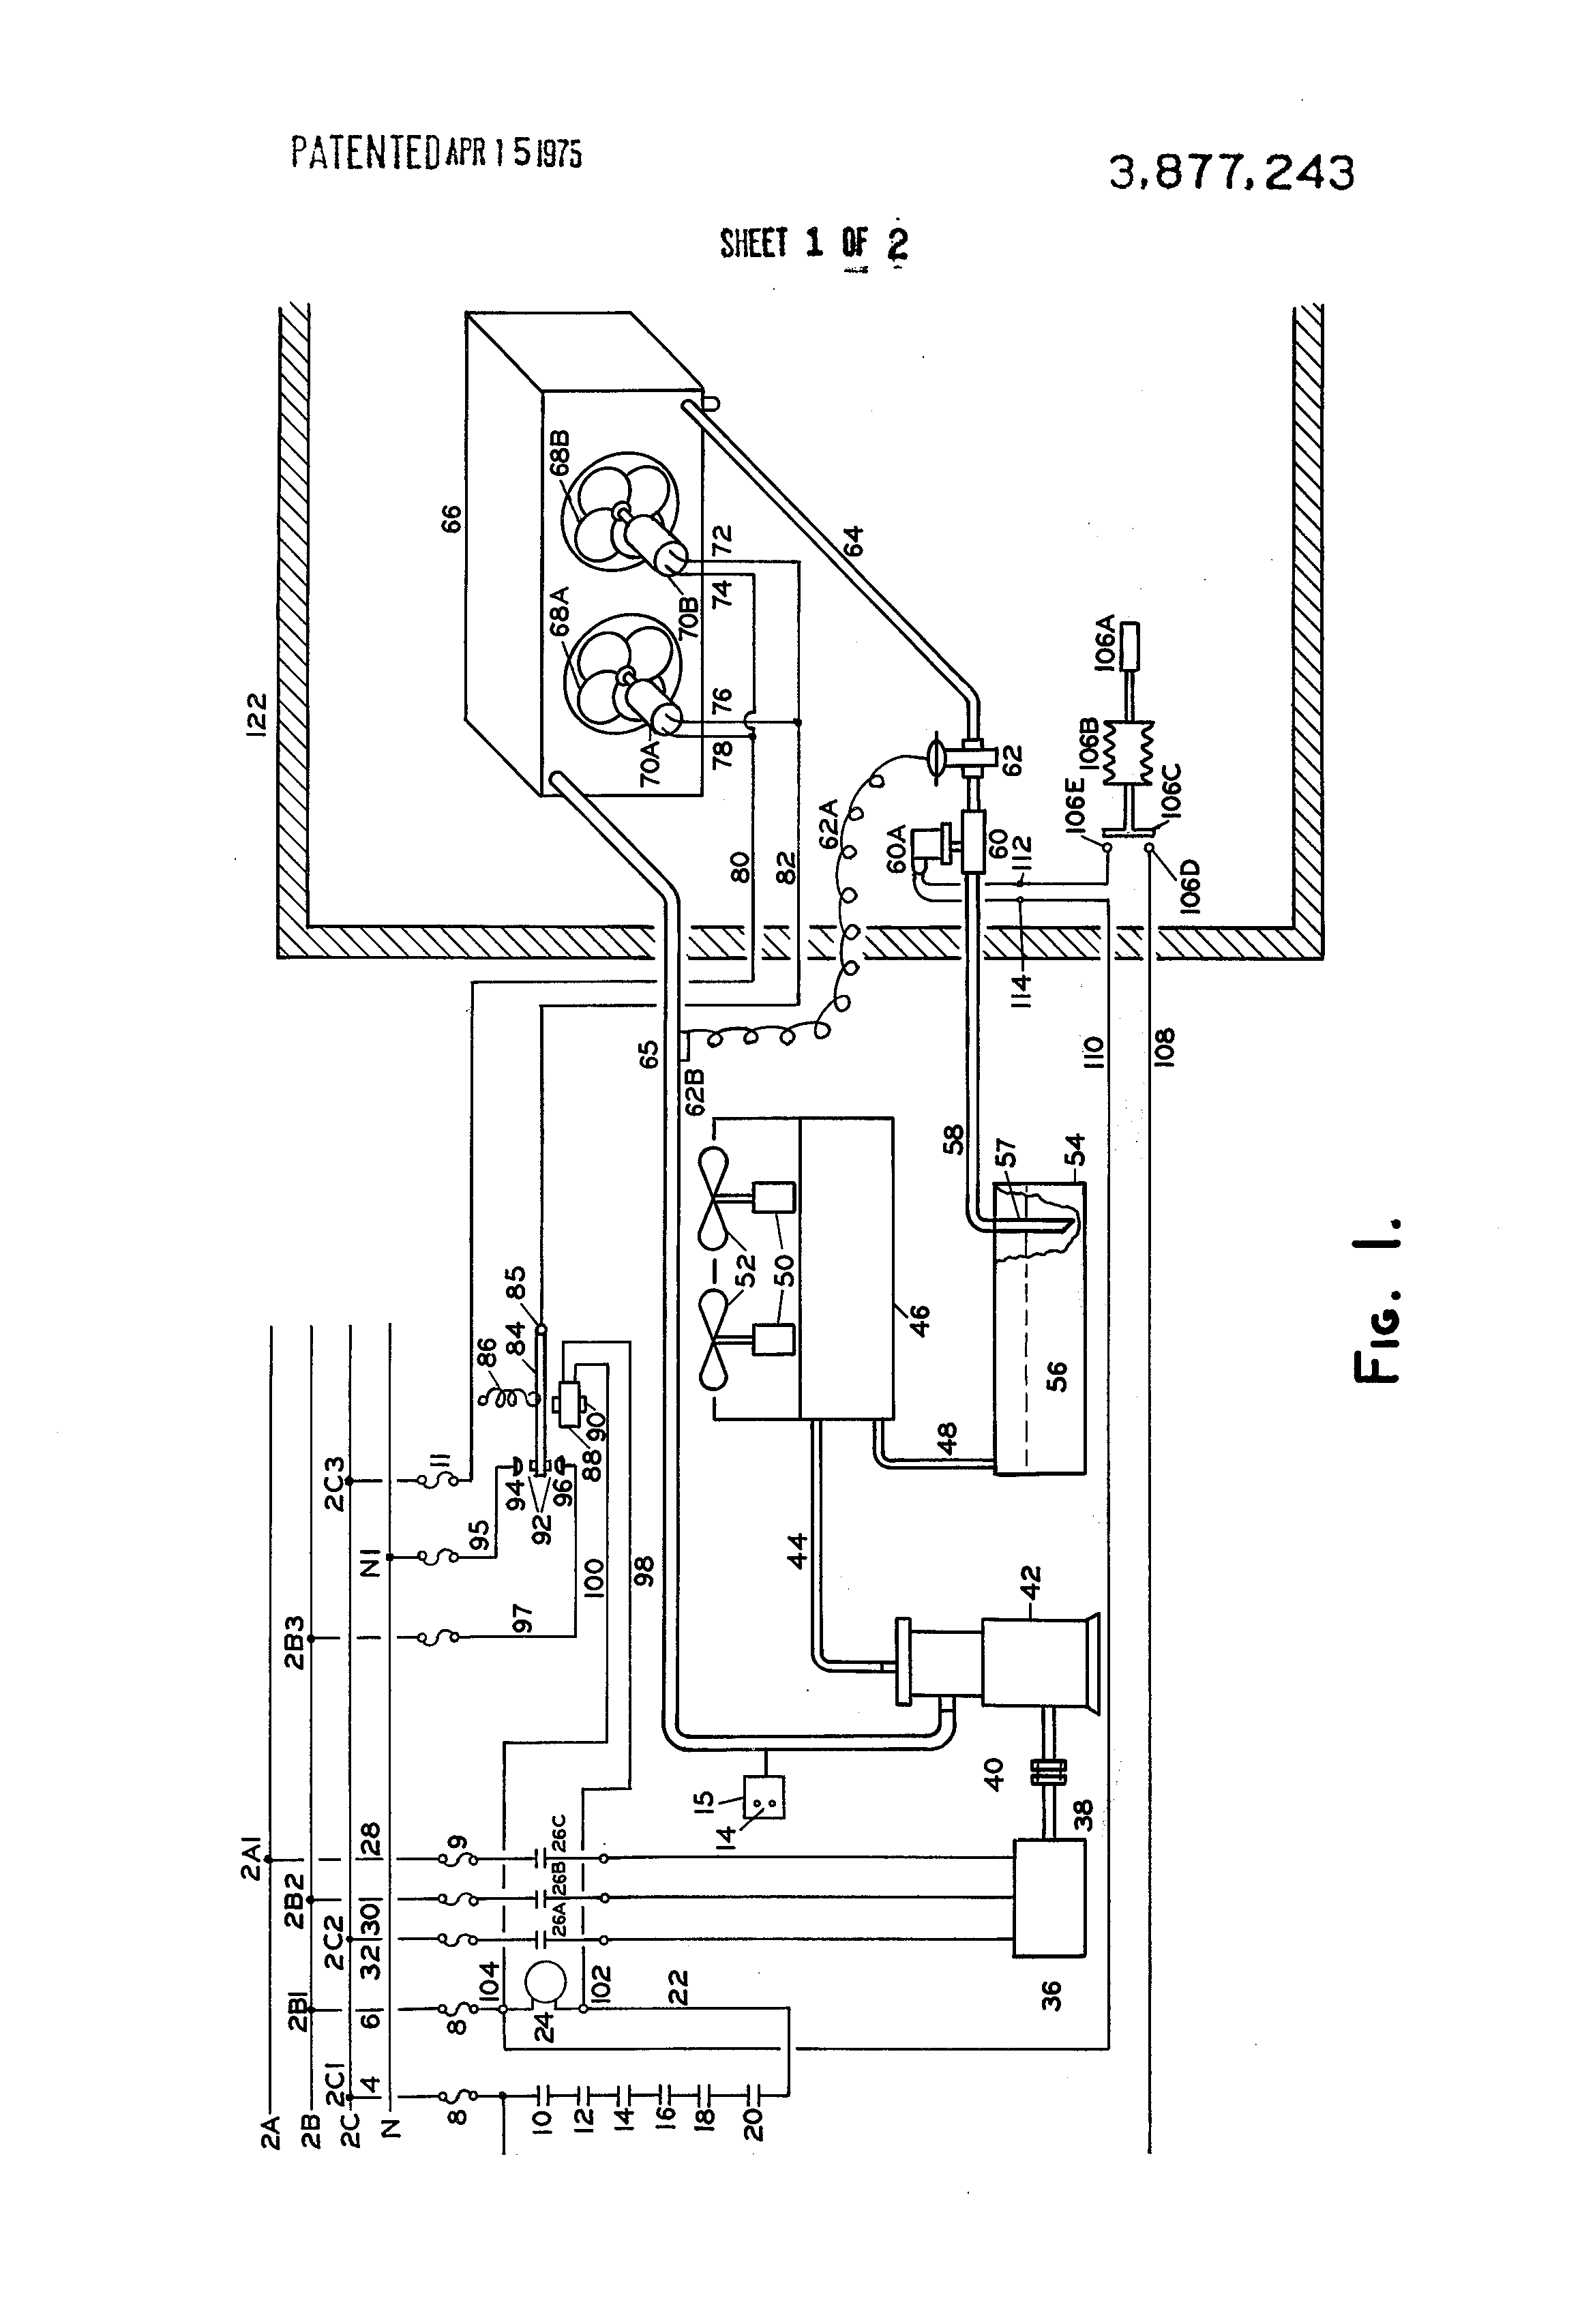 Kramer Refrigeration Wiring Diagram Library Patent Us3877243 Systems Including Evaporator With 2 Drawing